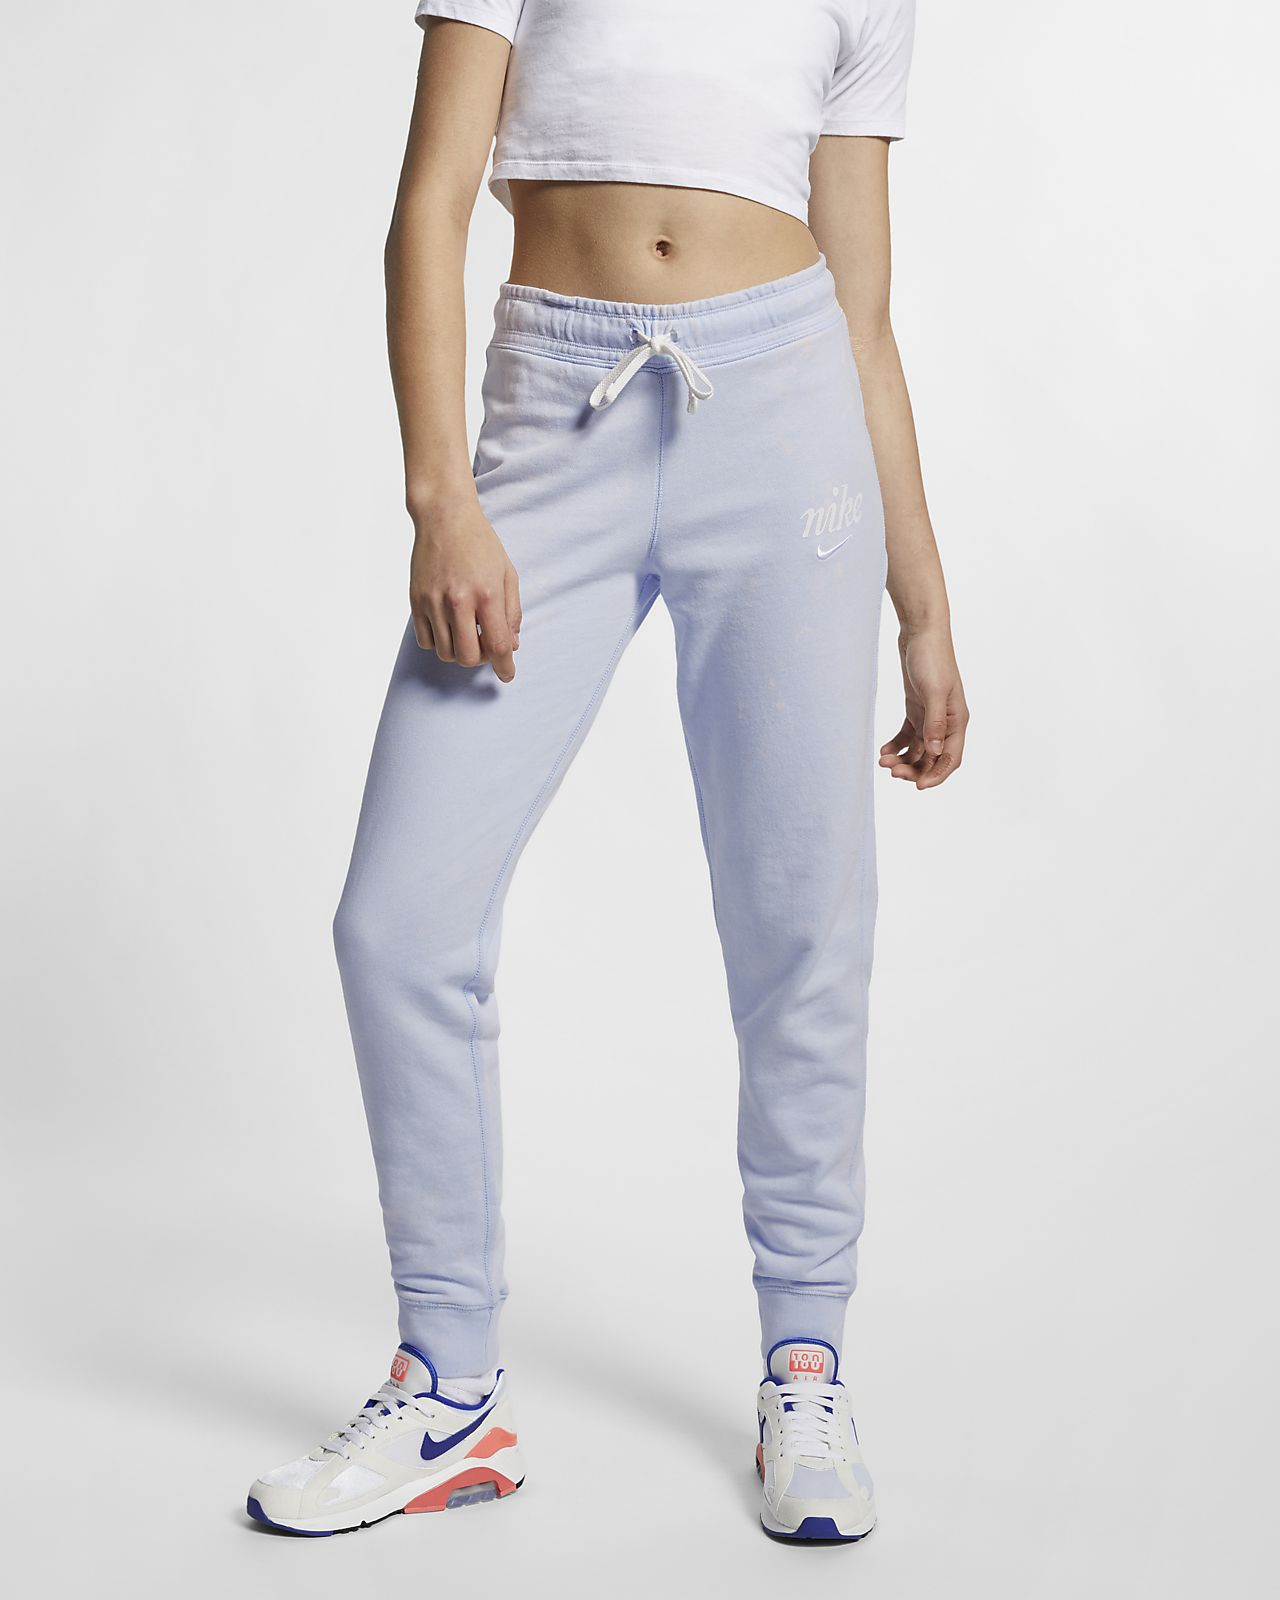 69e1357bf404 Low Resolution Nike Sportswear Women s Pants Nike Sportswear Women s Pants